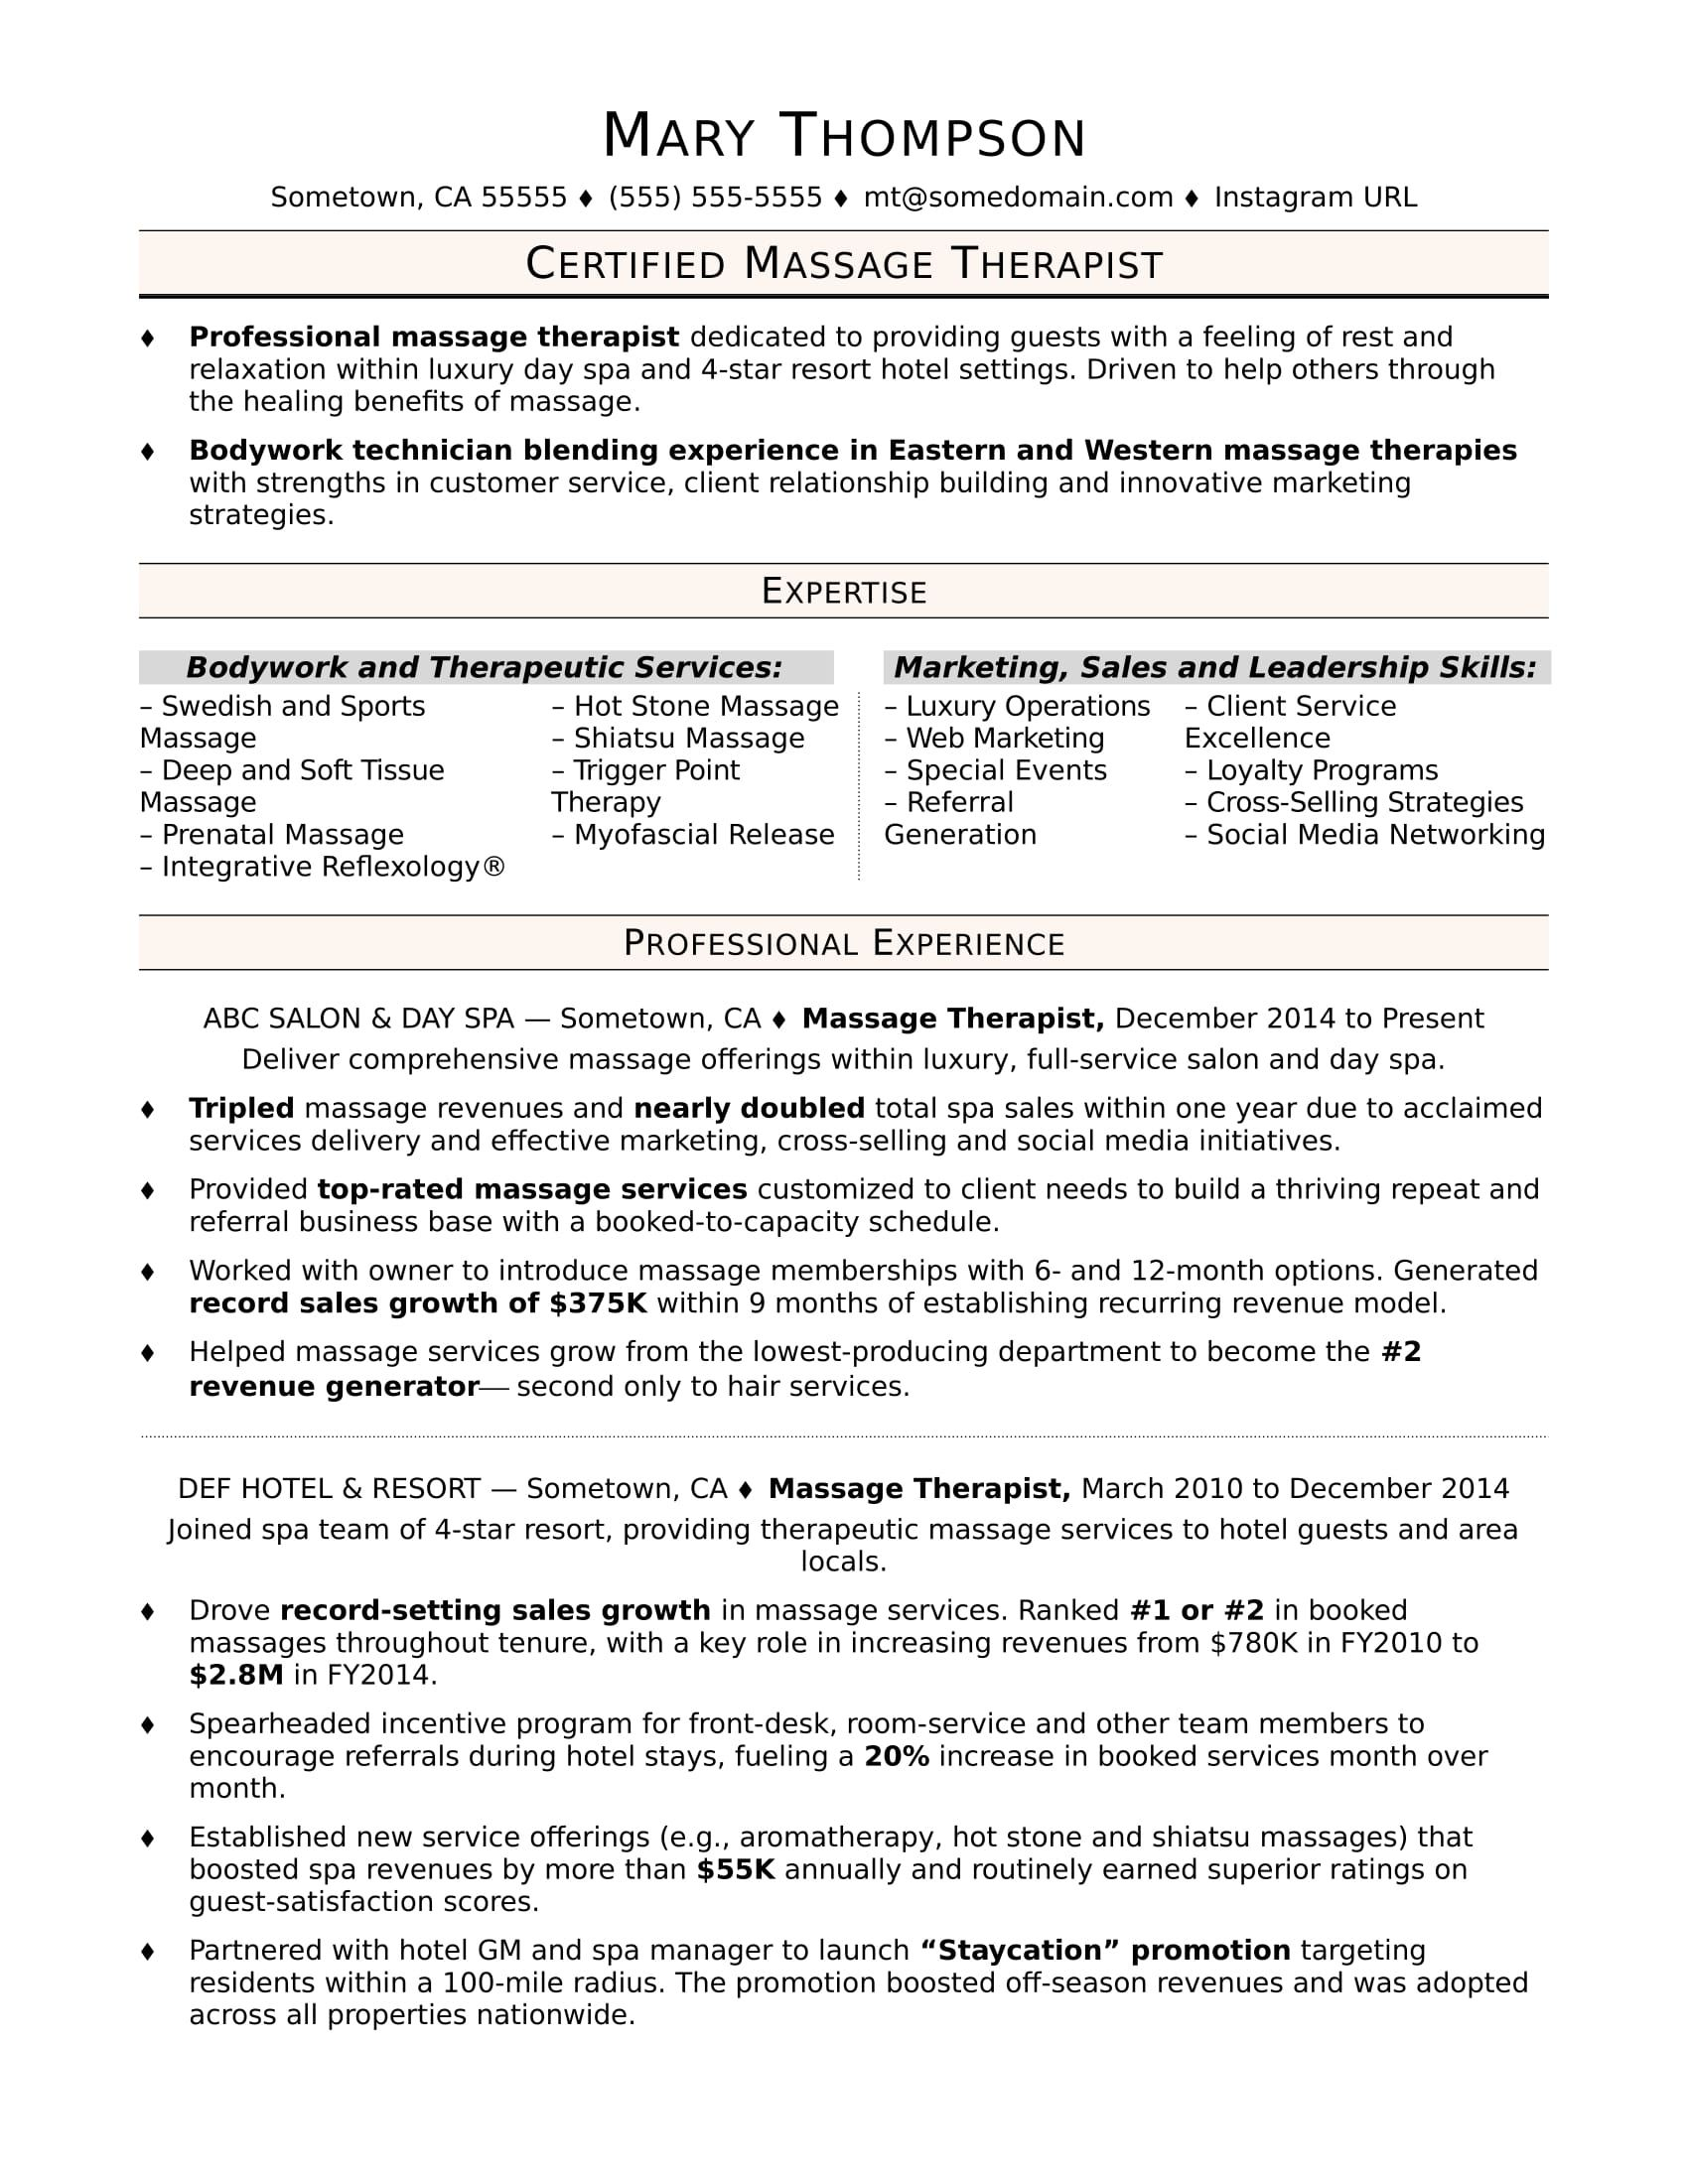 Massage therapist resume sample Business plan template